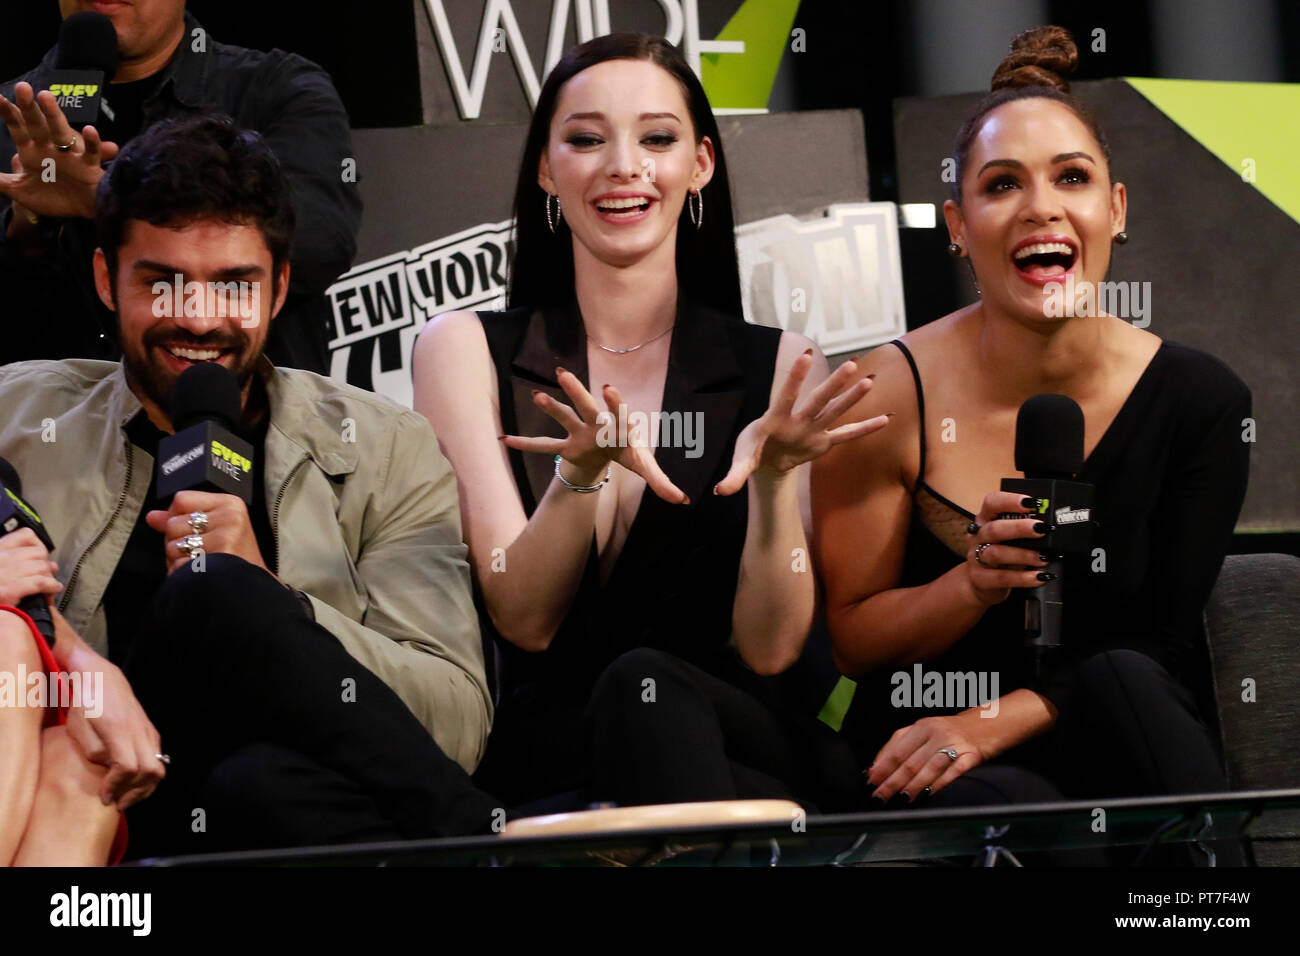 New York, NY, USA. 7th Oct, 2018. Sean Teale, Emma Dumont and Grace Byers at The Gifted Cast Interview at the Jacob Jackets Center at the 2018 New York Comic Con in New York City on October 7, 2018. Credit: Diego Corredor/Media Punch/Alamy Live News - Stock Image